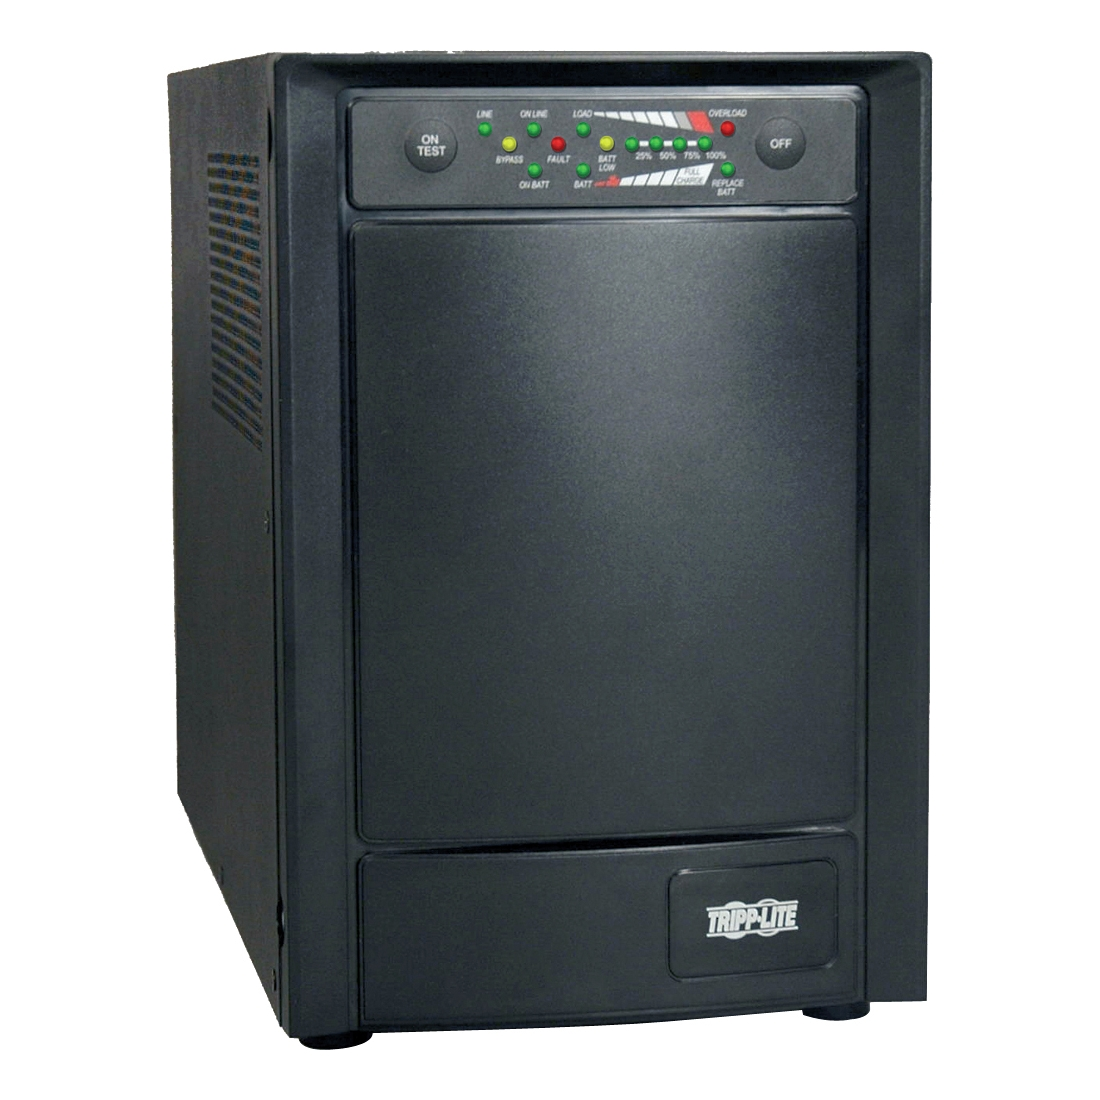 Tripp Lite 1000Va 800W Ups Smart Online Tower 100V 120V Usb Db9 Snmp Rt by Tripp Lite